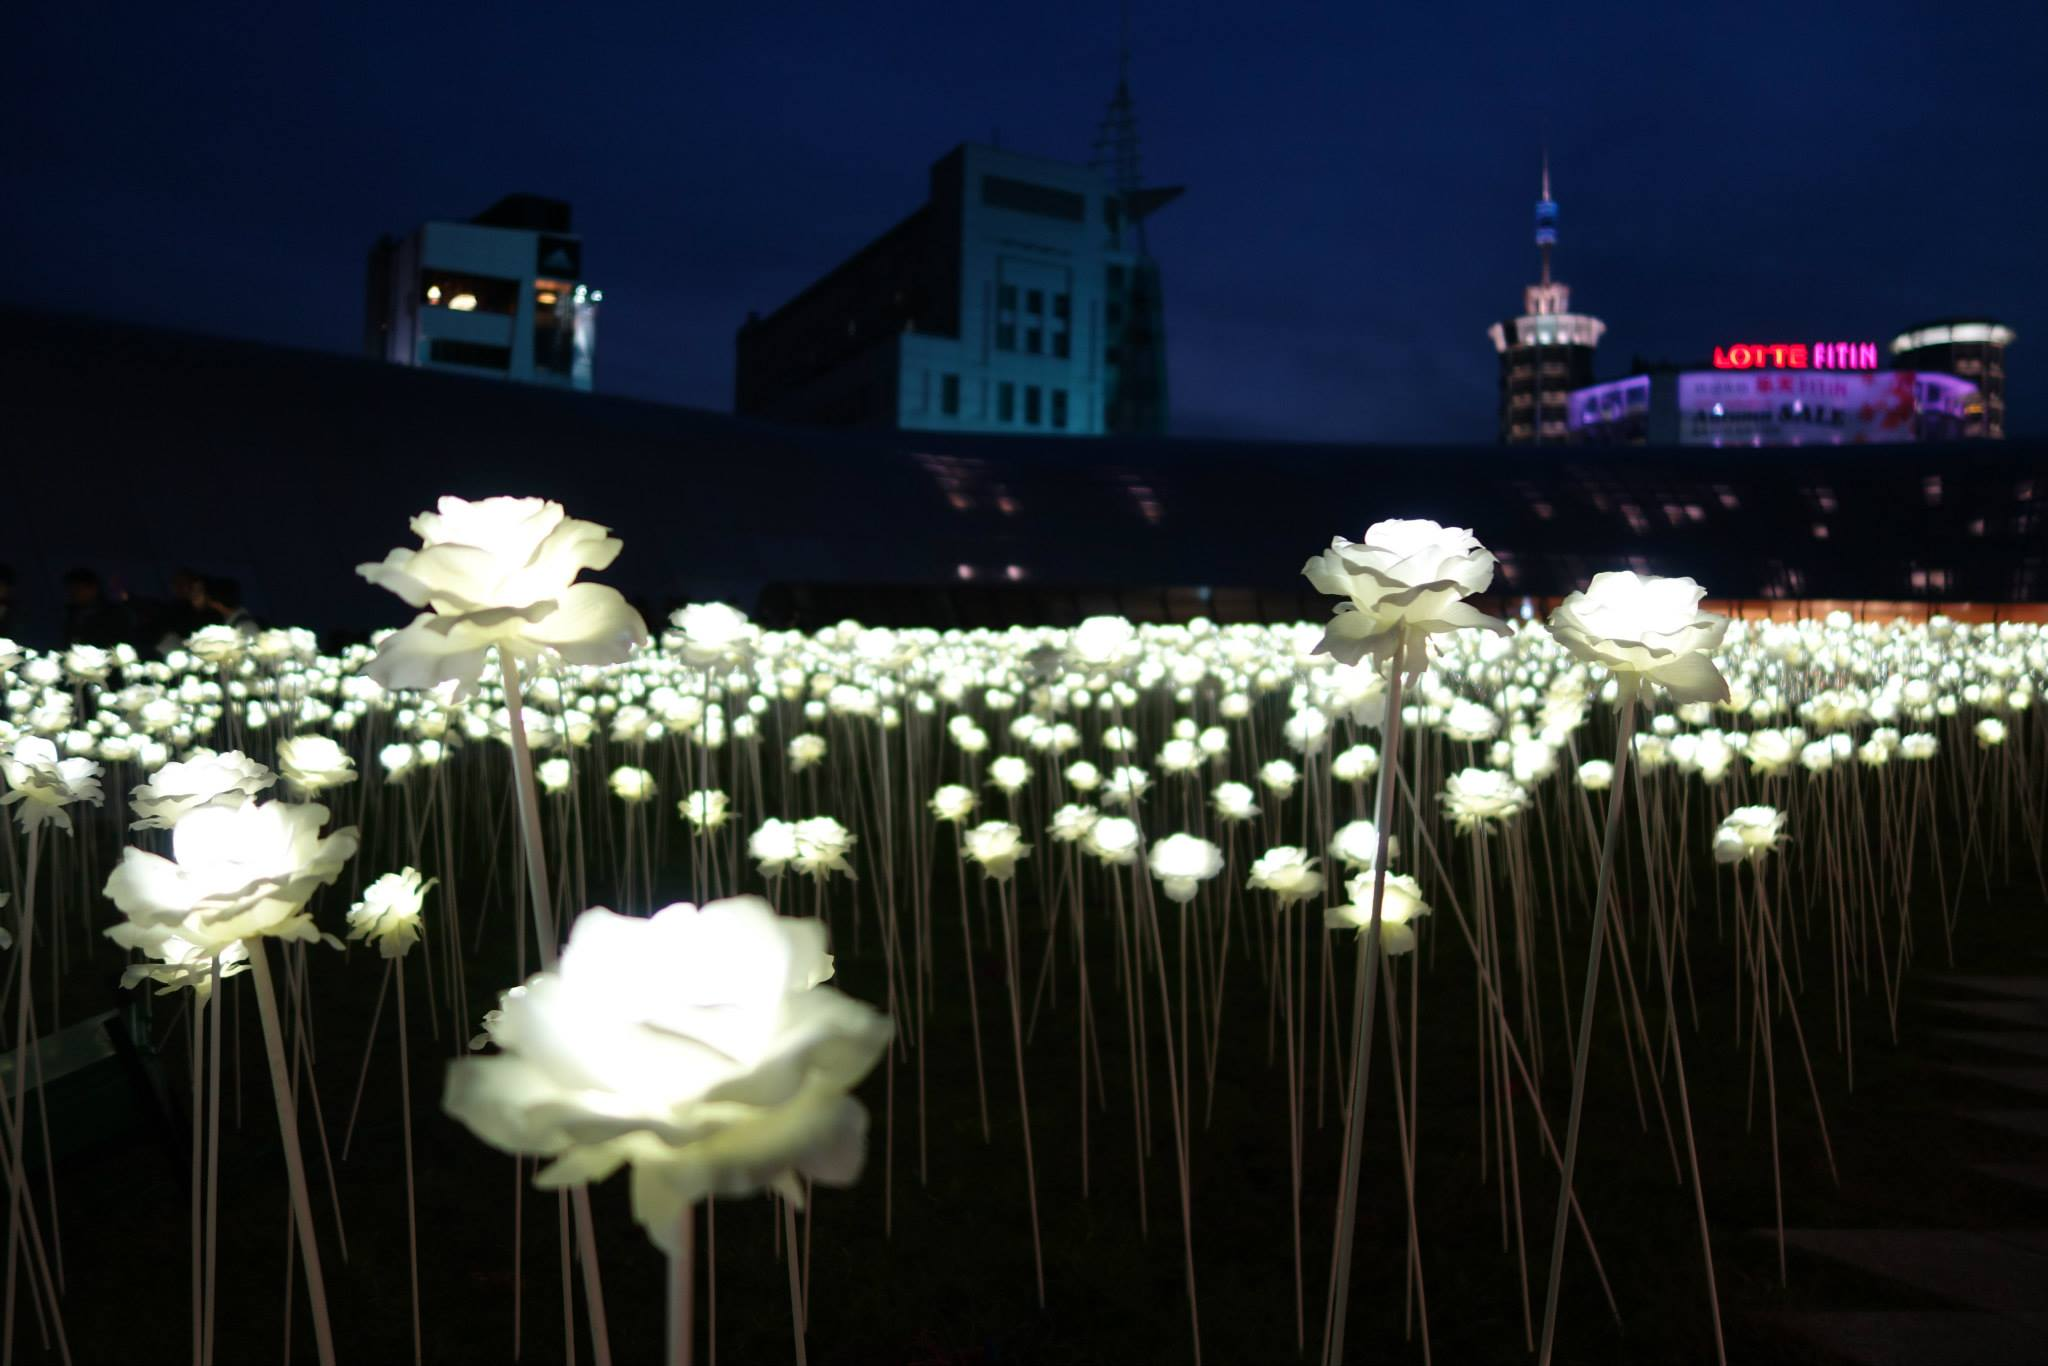 LED flowers light up after the sun sets making it magical at night